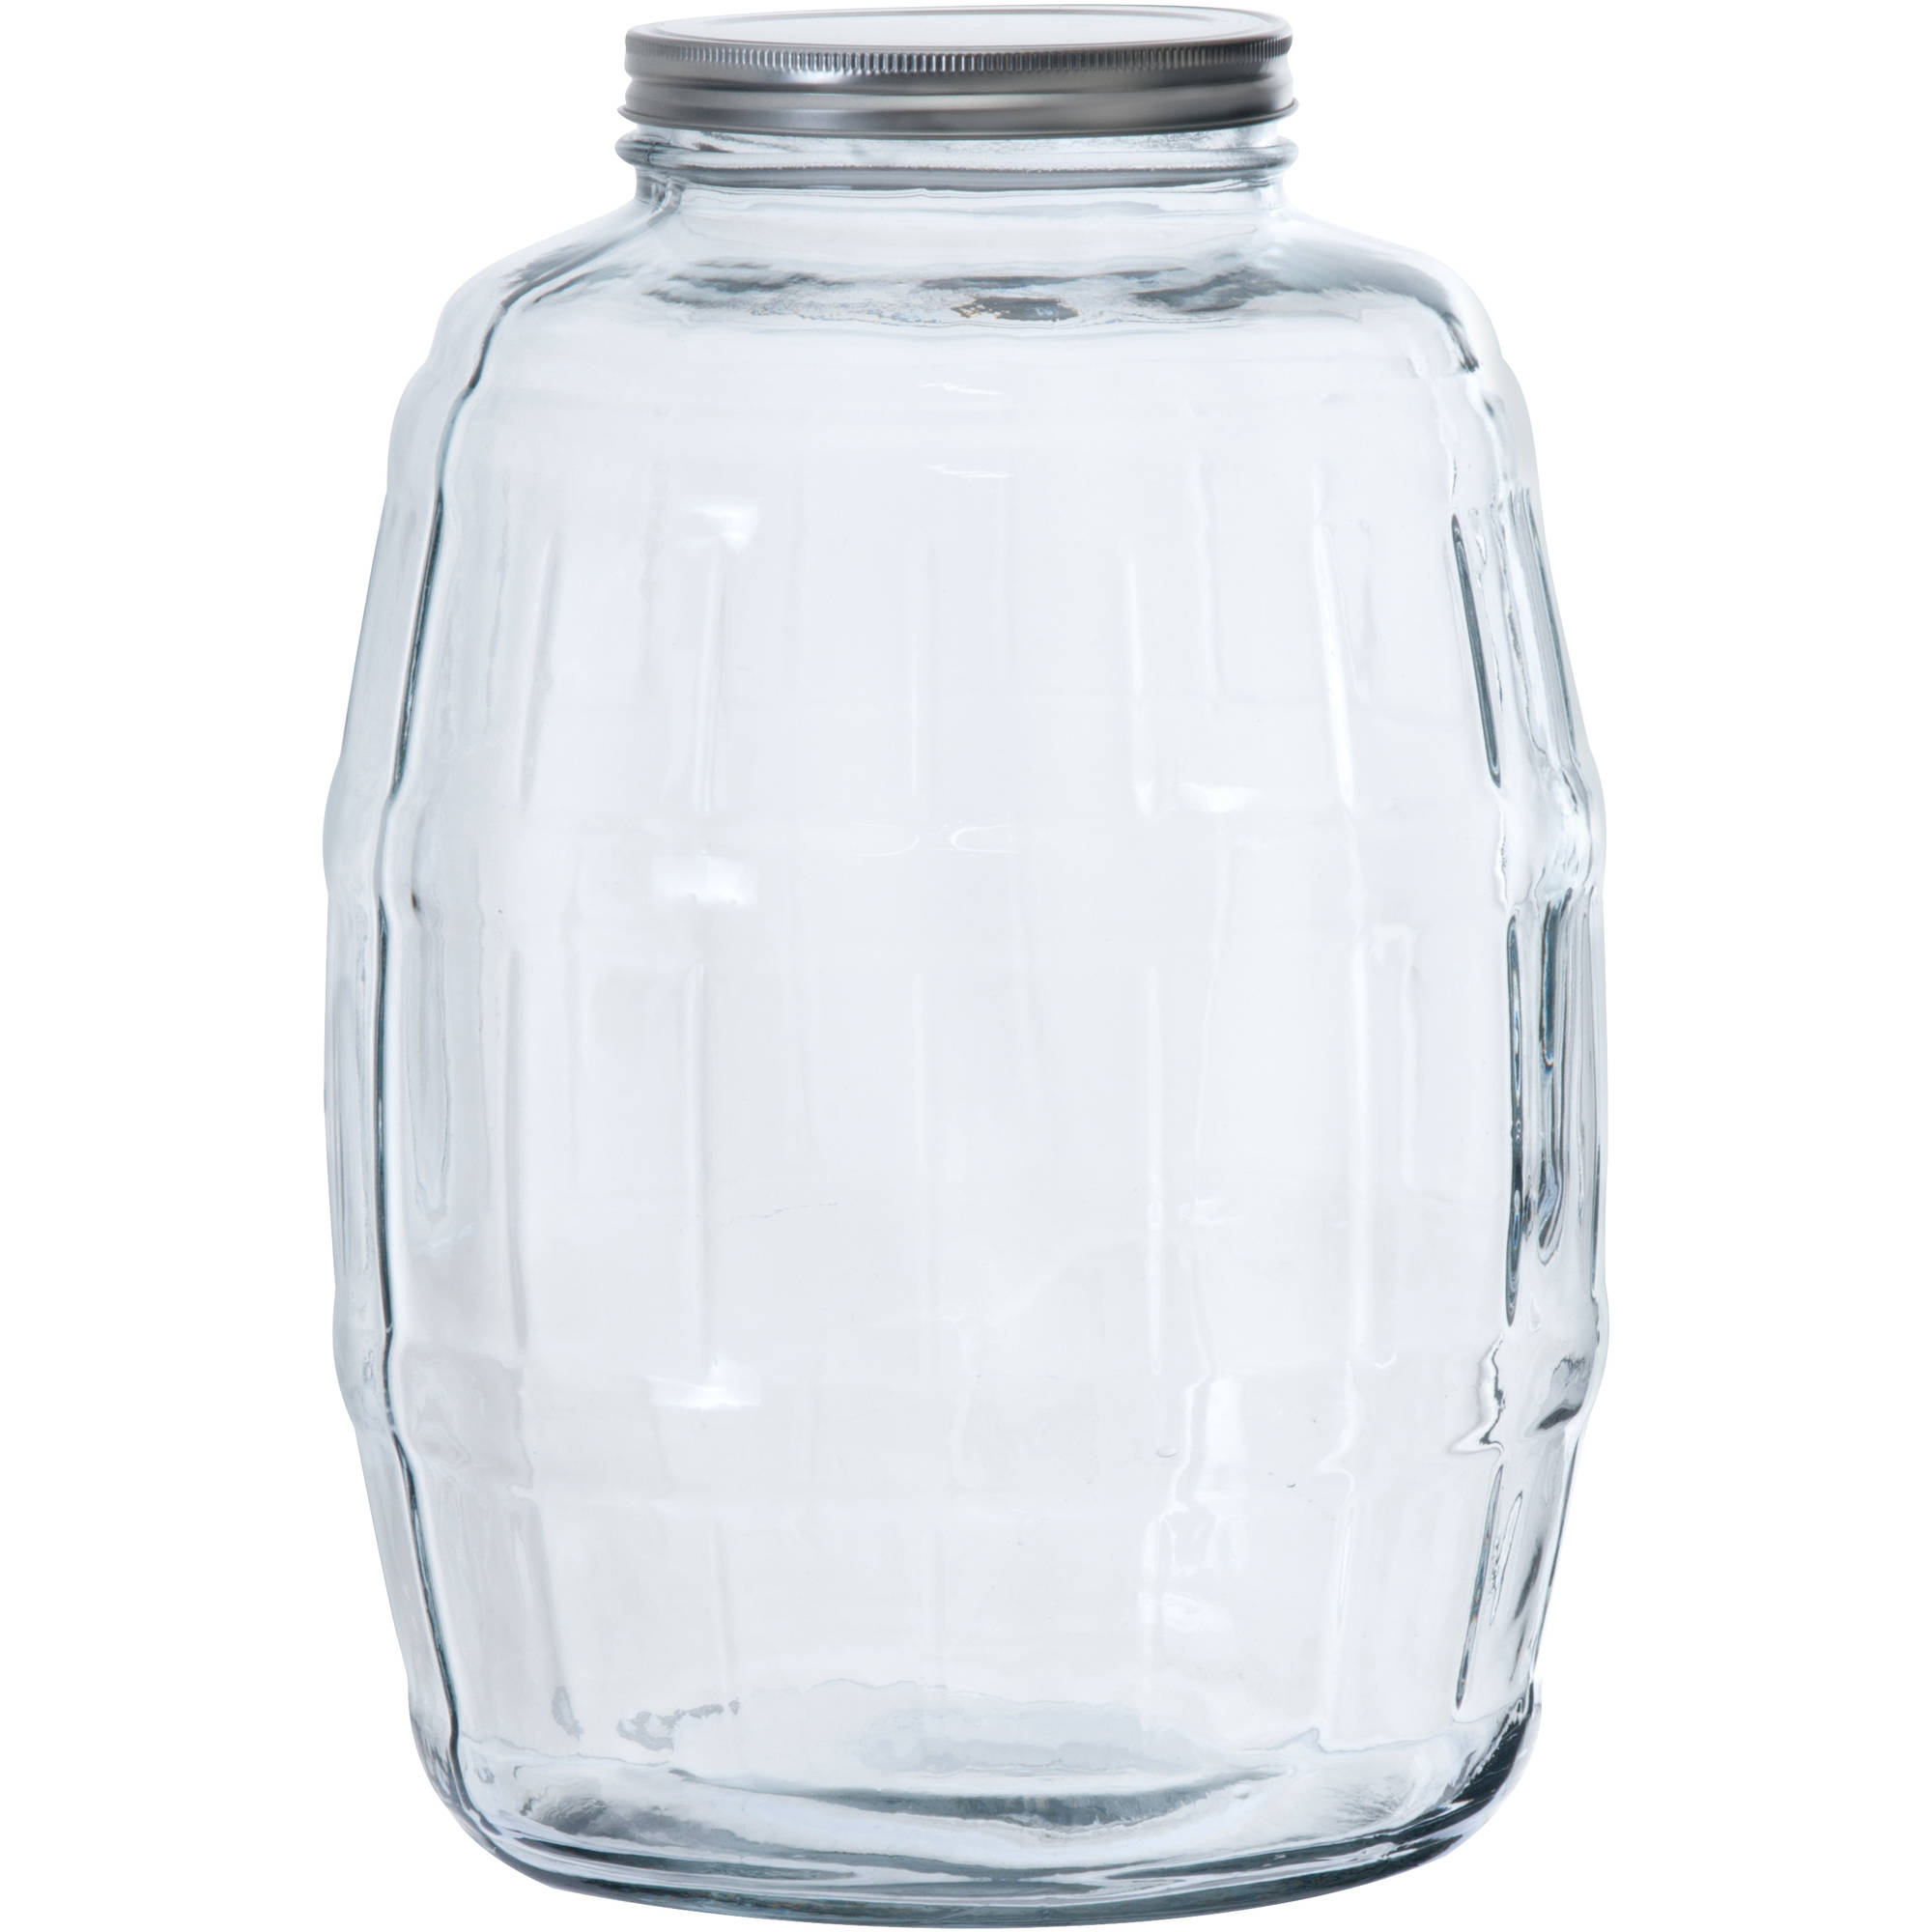 Jars On Sale Mainstays 67 Oz Clear Glass Jar With Clamp Lid Walmart